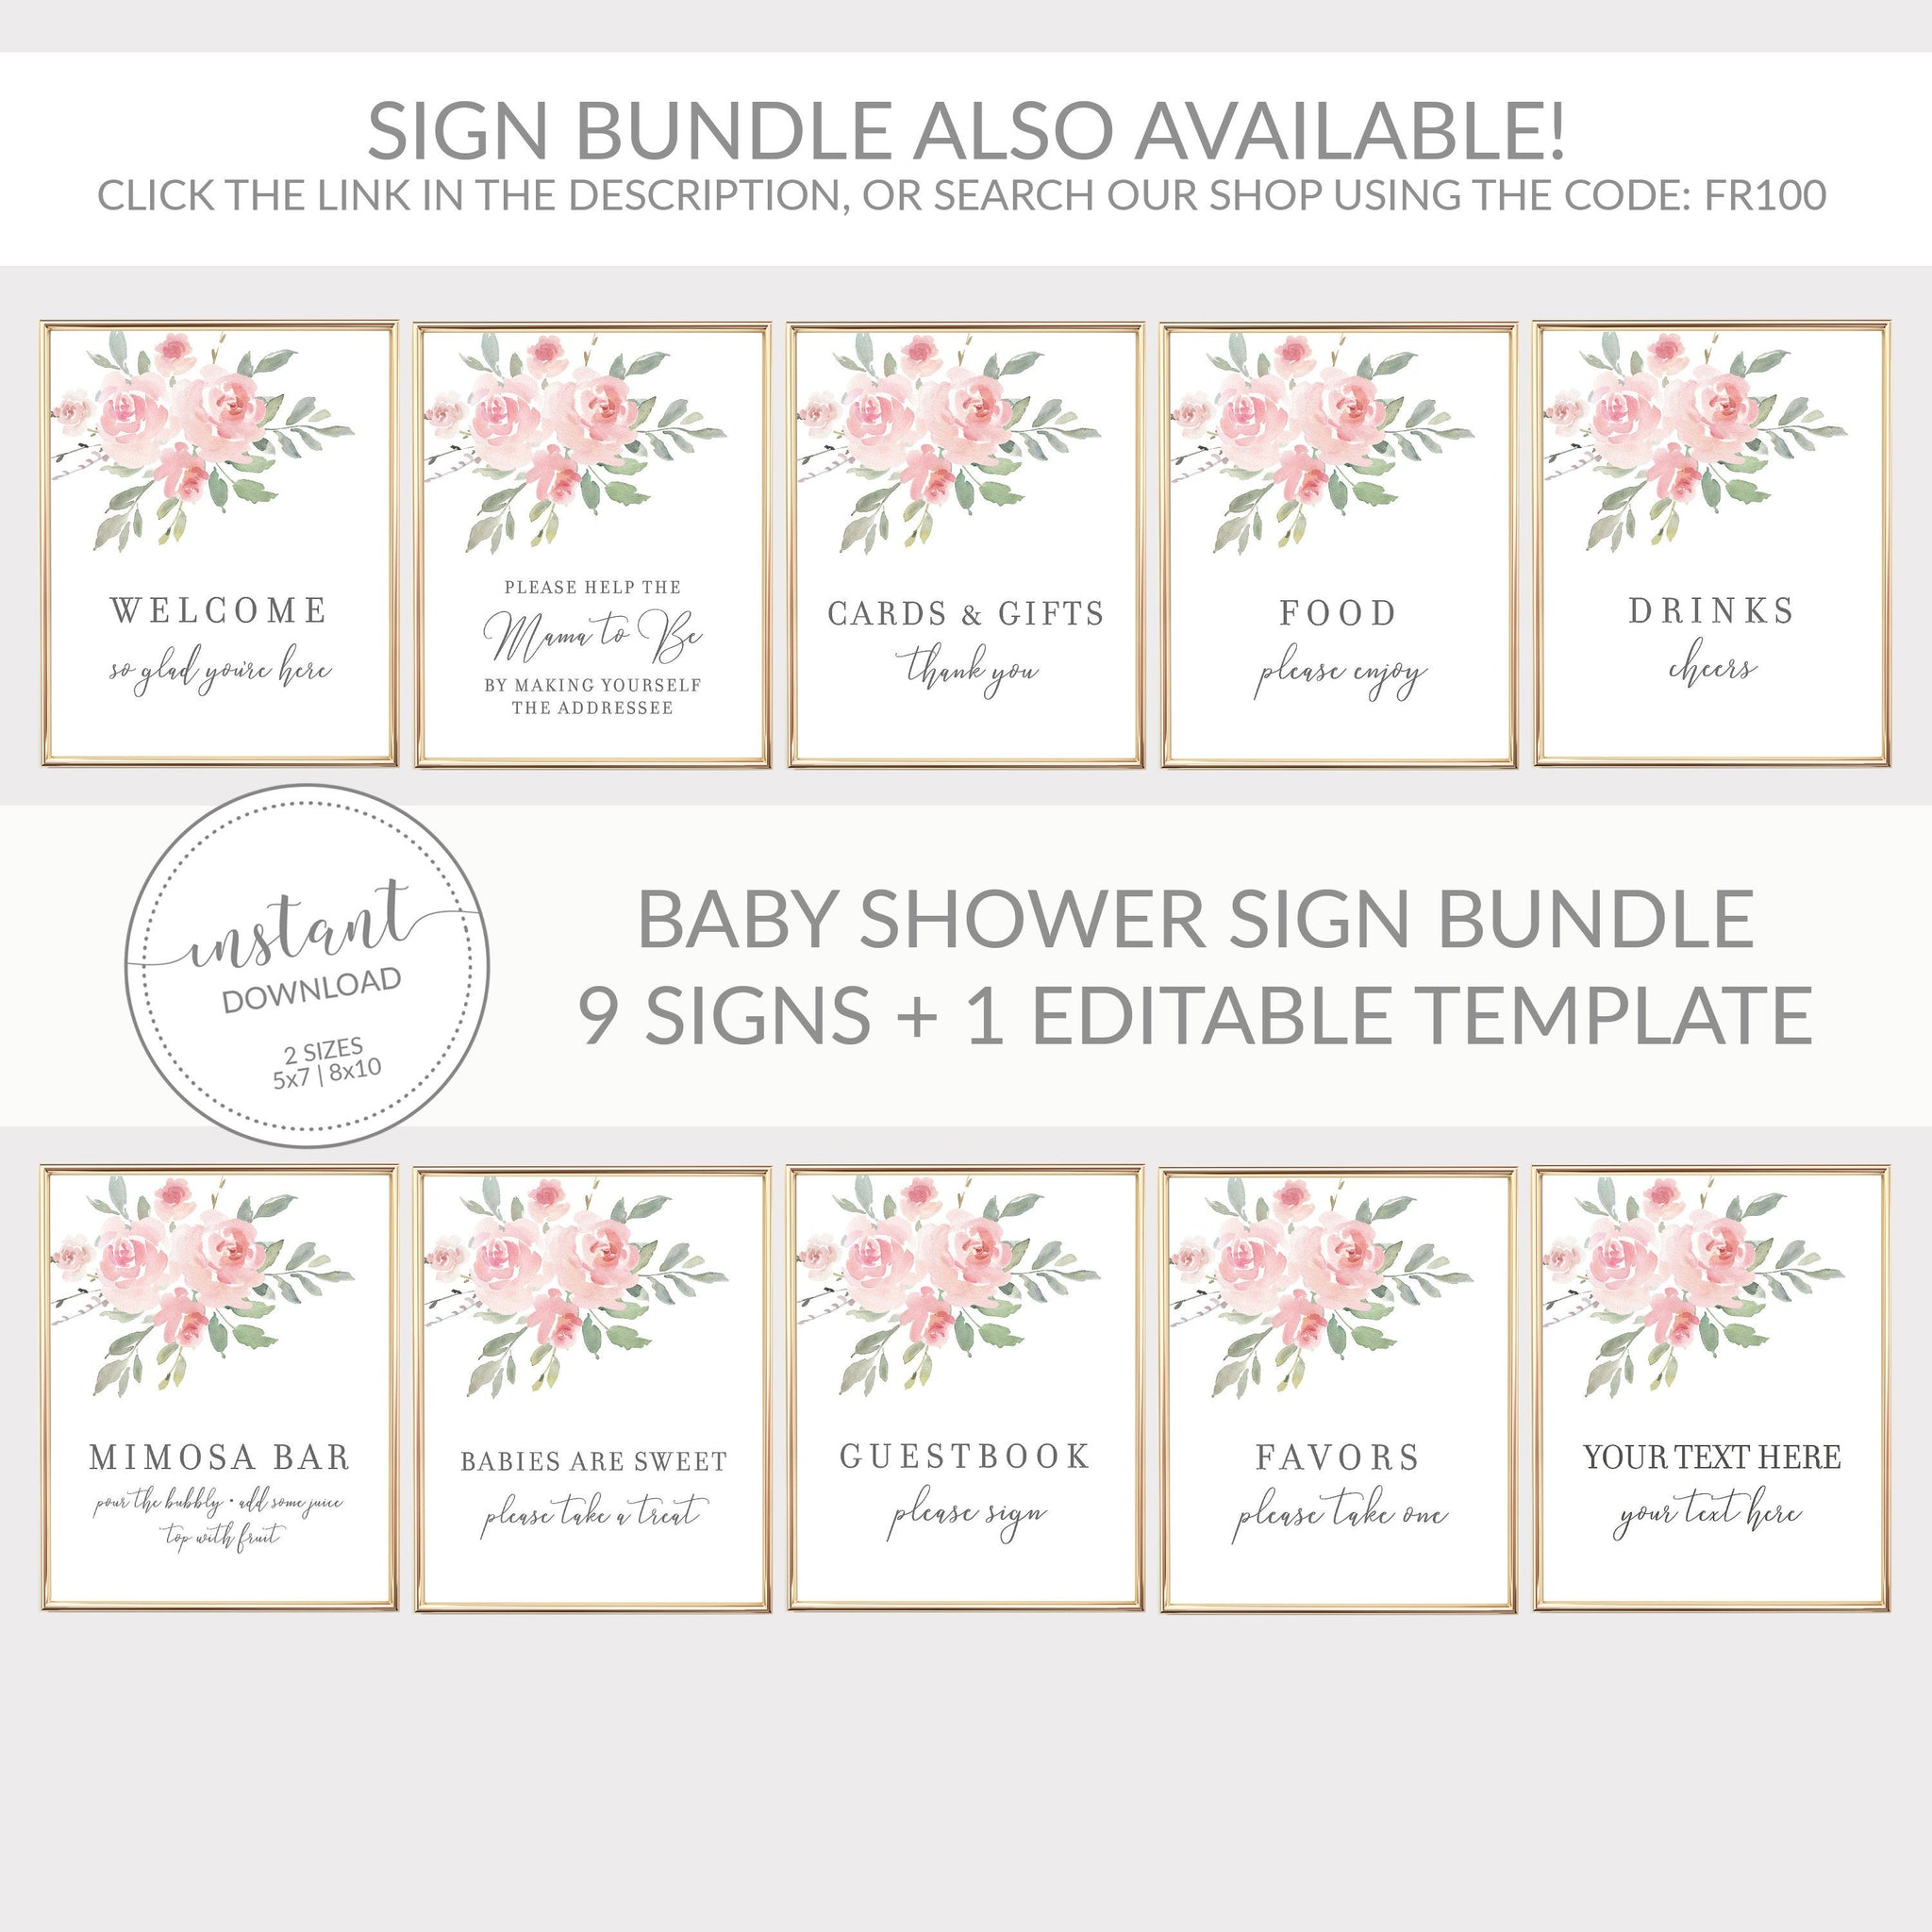 Blush Pink Floral Mimosa Bar Printable Sign INSTANT DOWNLOAD, Birthday, Bridal Shower, Baby Shower, Wedding Decorations and Supplies - FR100